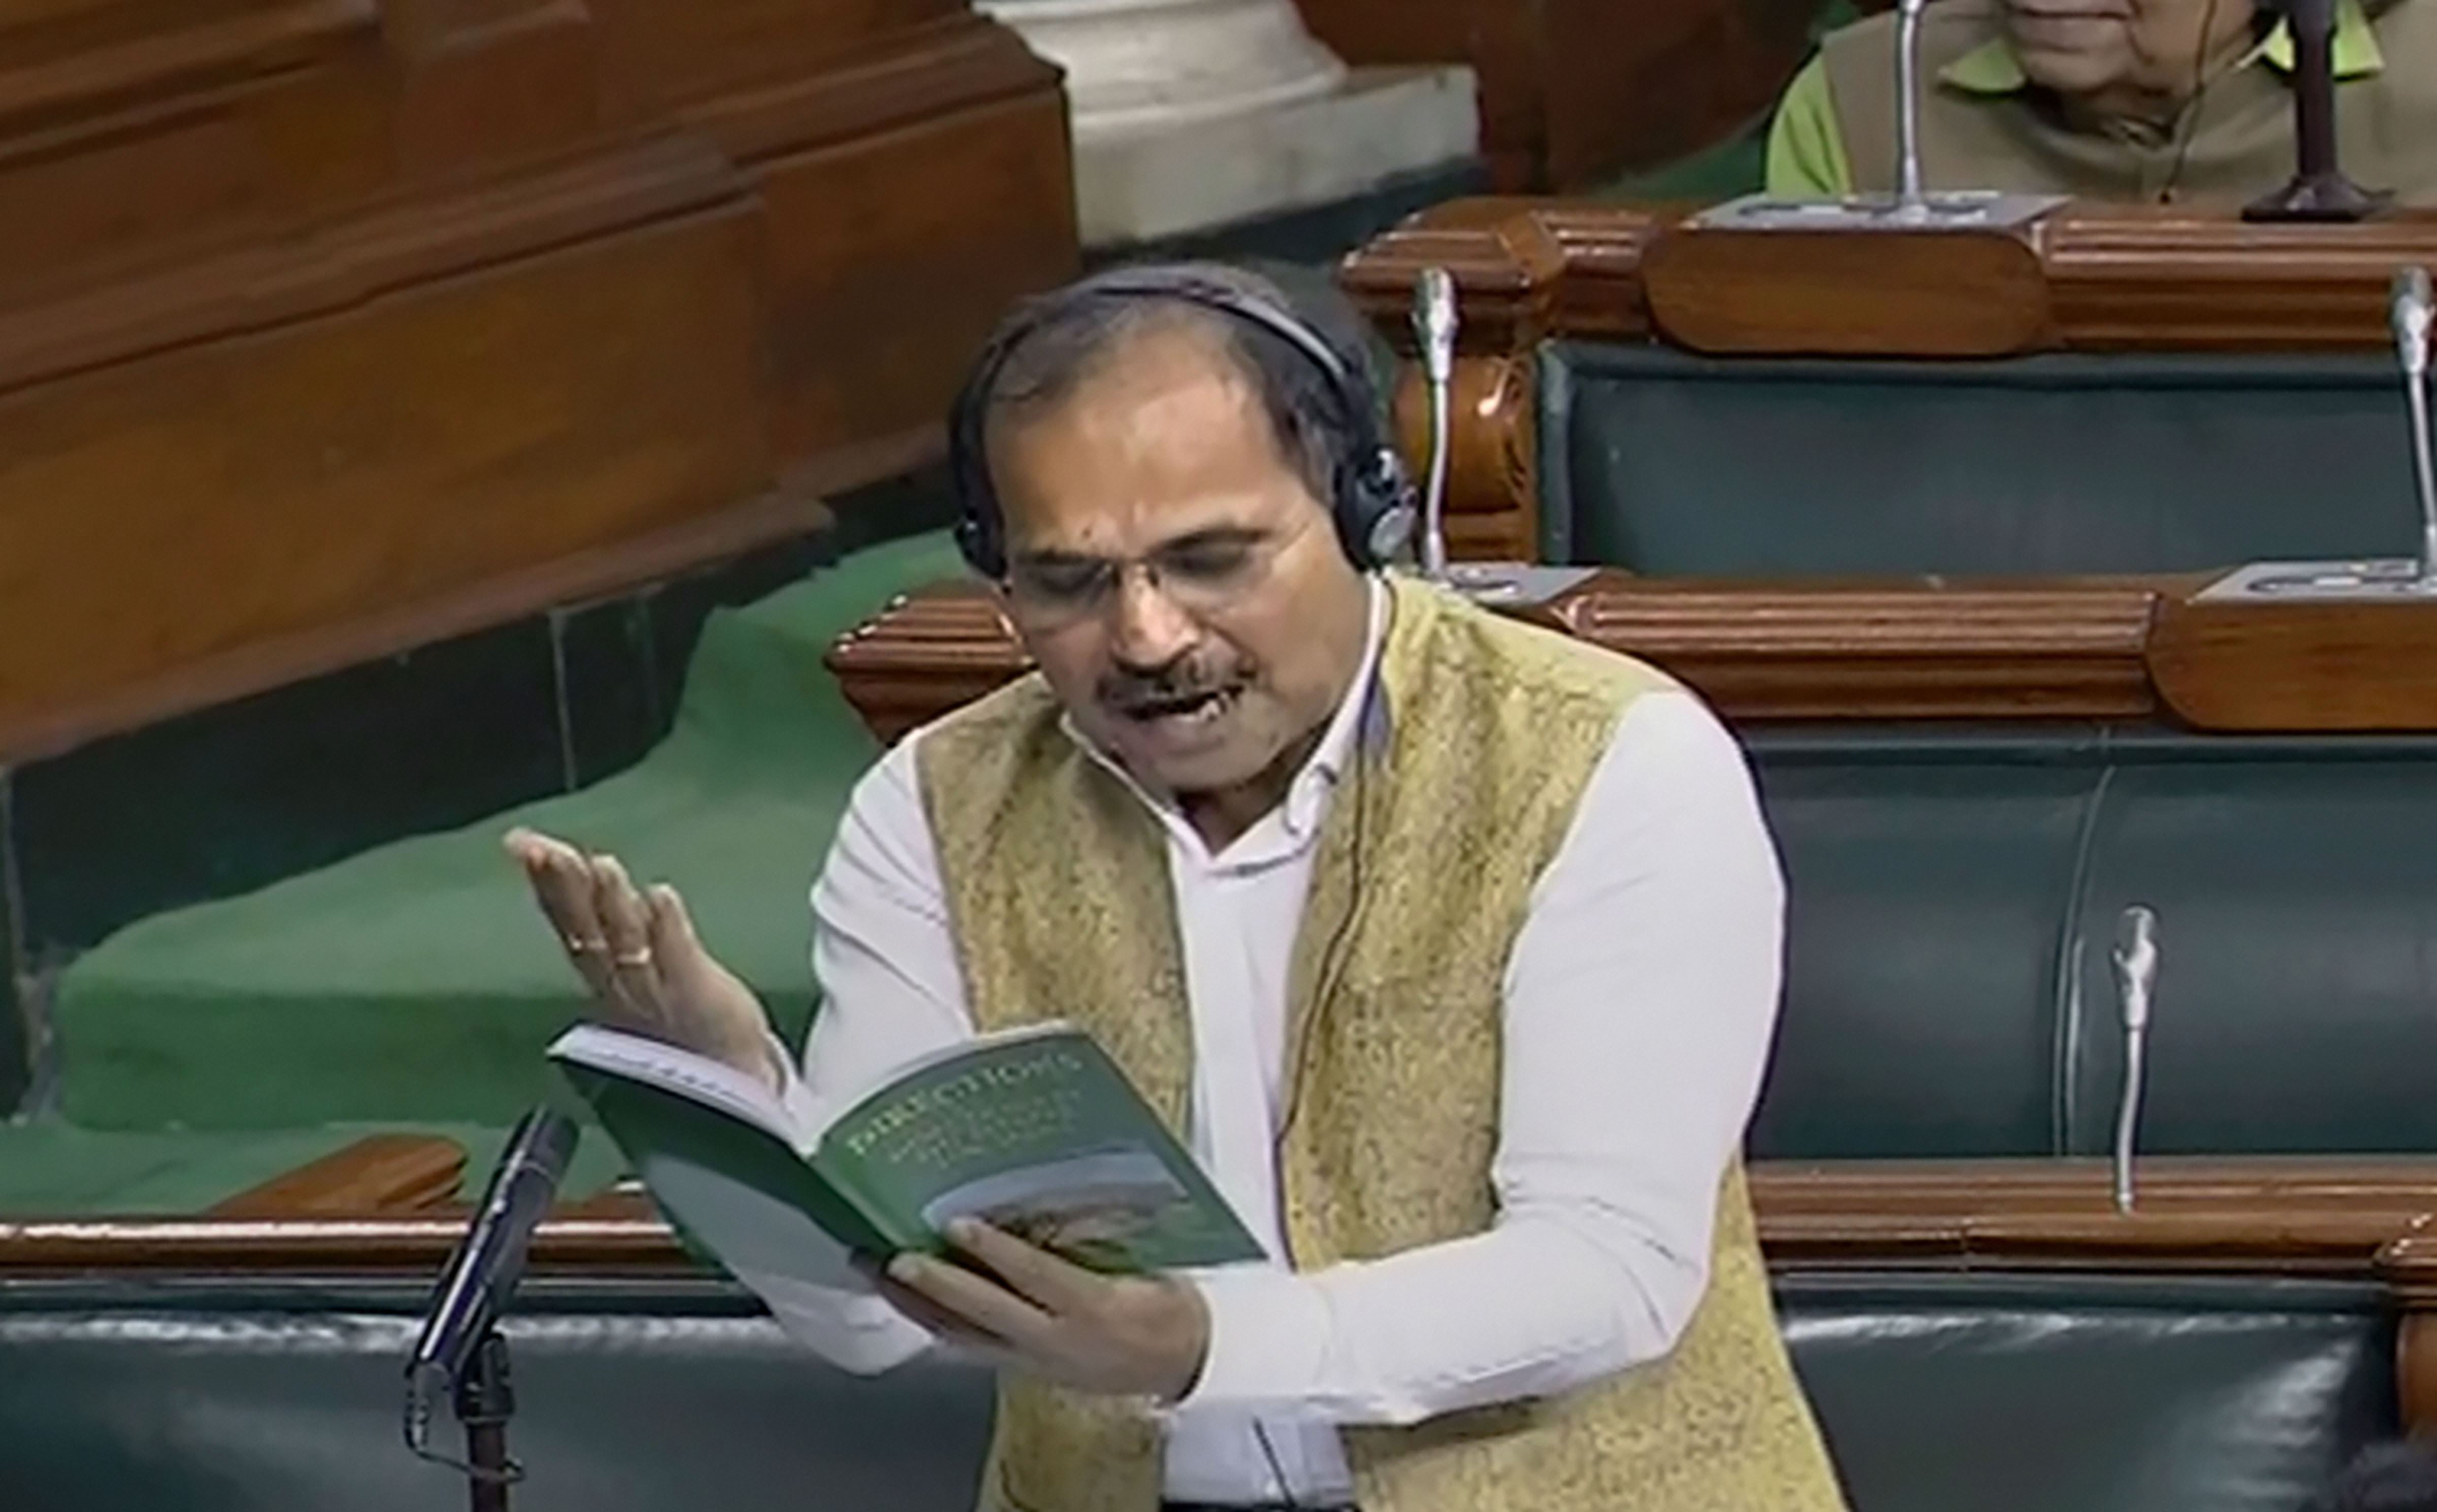 Congress leader Adhir Ranjan Chowdhury speaks in the Lok Sabha during the winter Session of Parliament, in New Delhi, Tuesday, November 26, 2019.